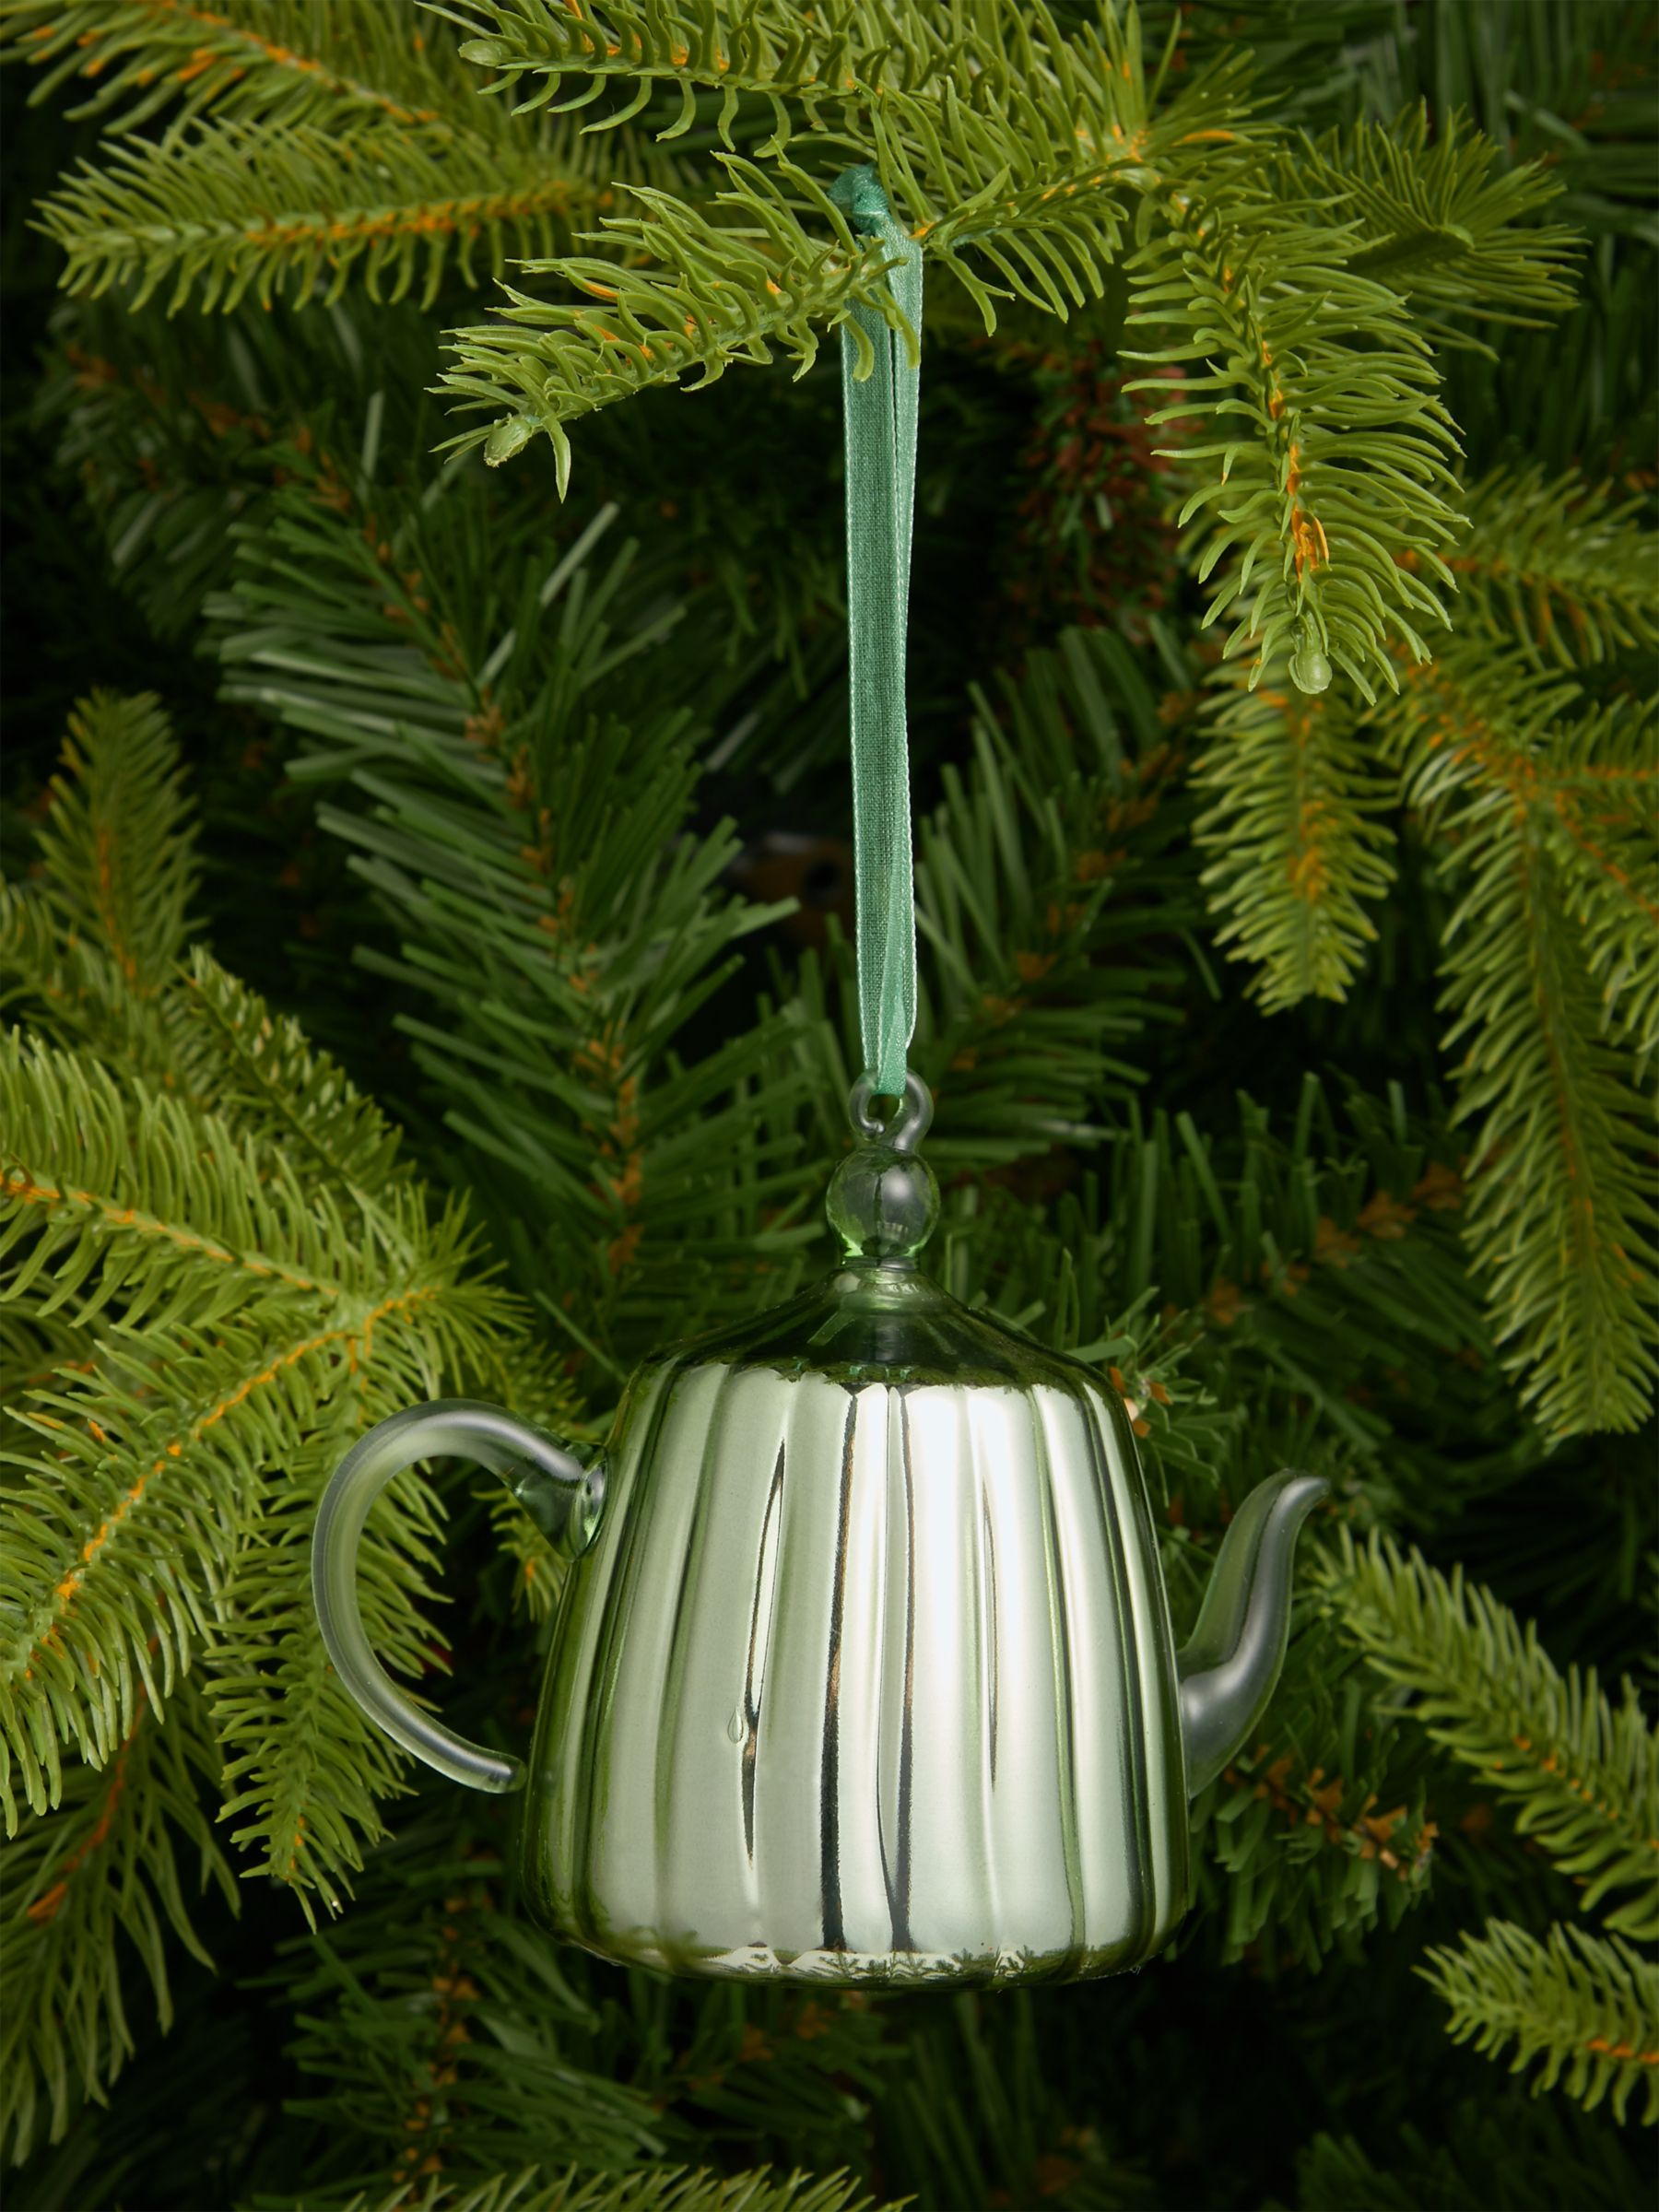 John Lewis & Partners Art of Japan Teapot Bauble, Green